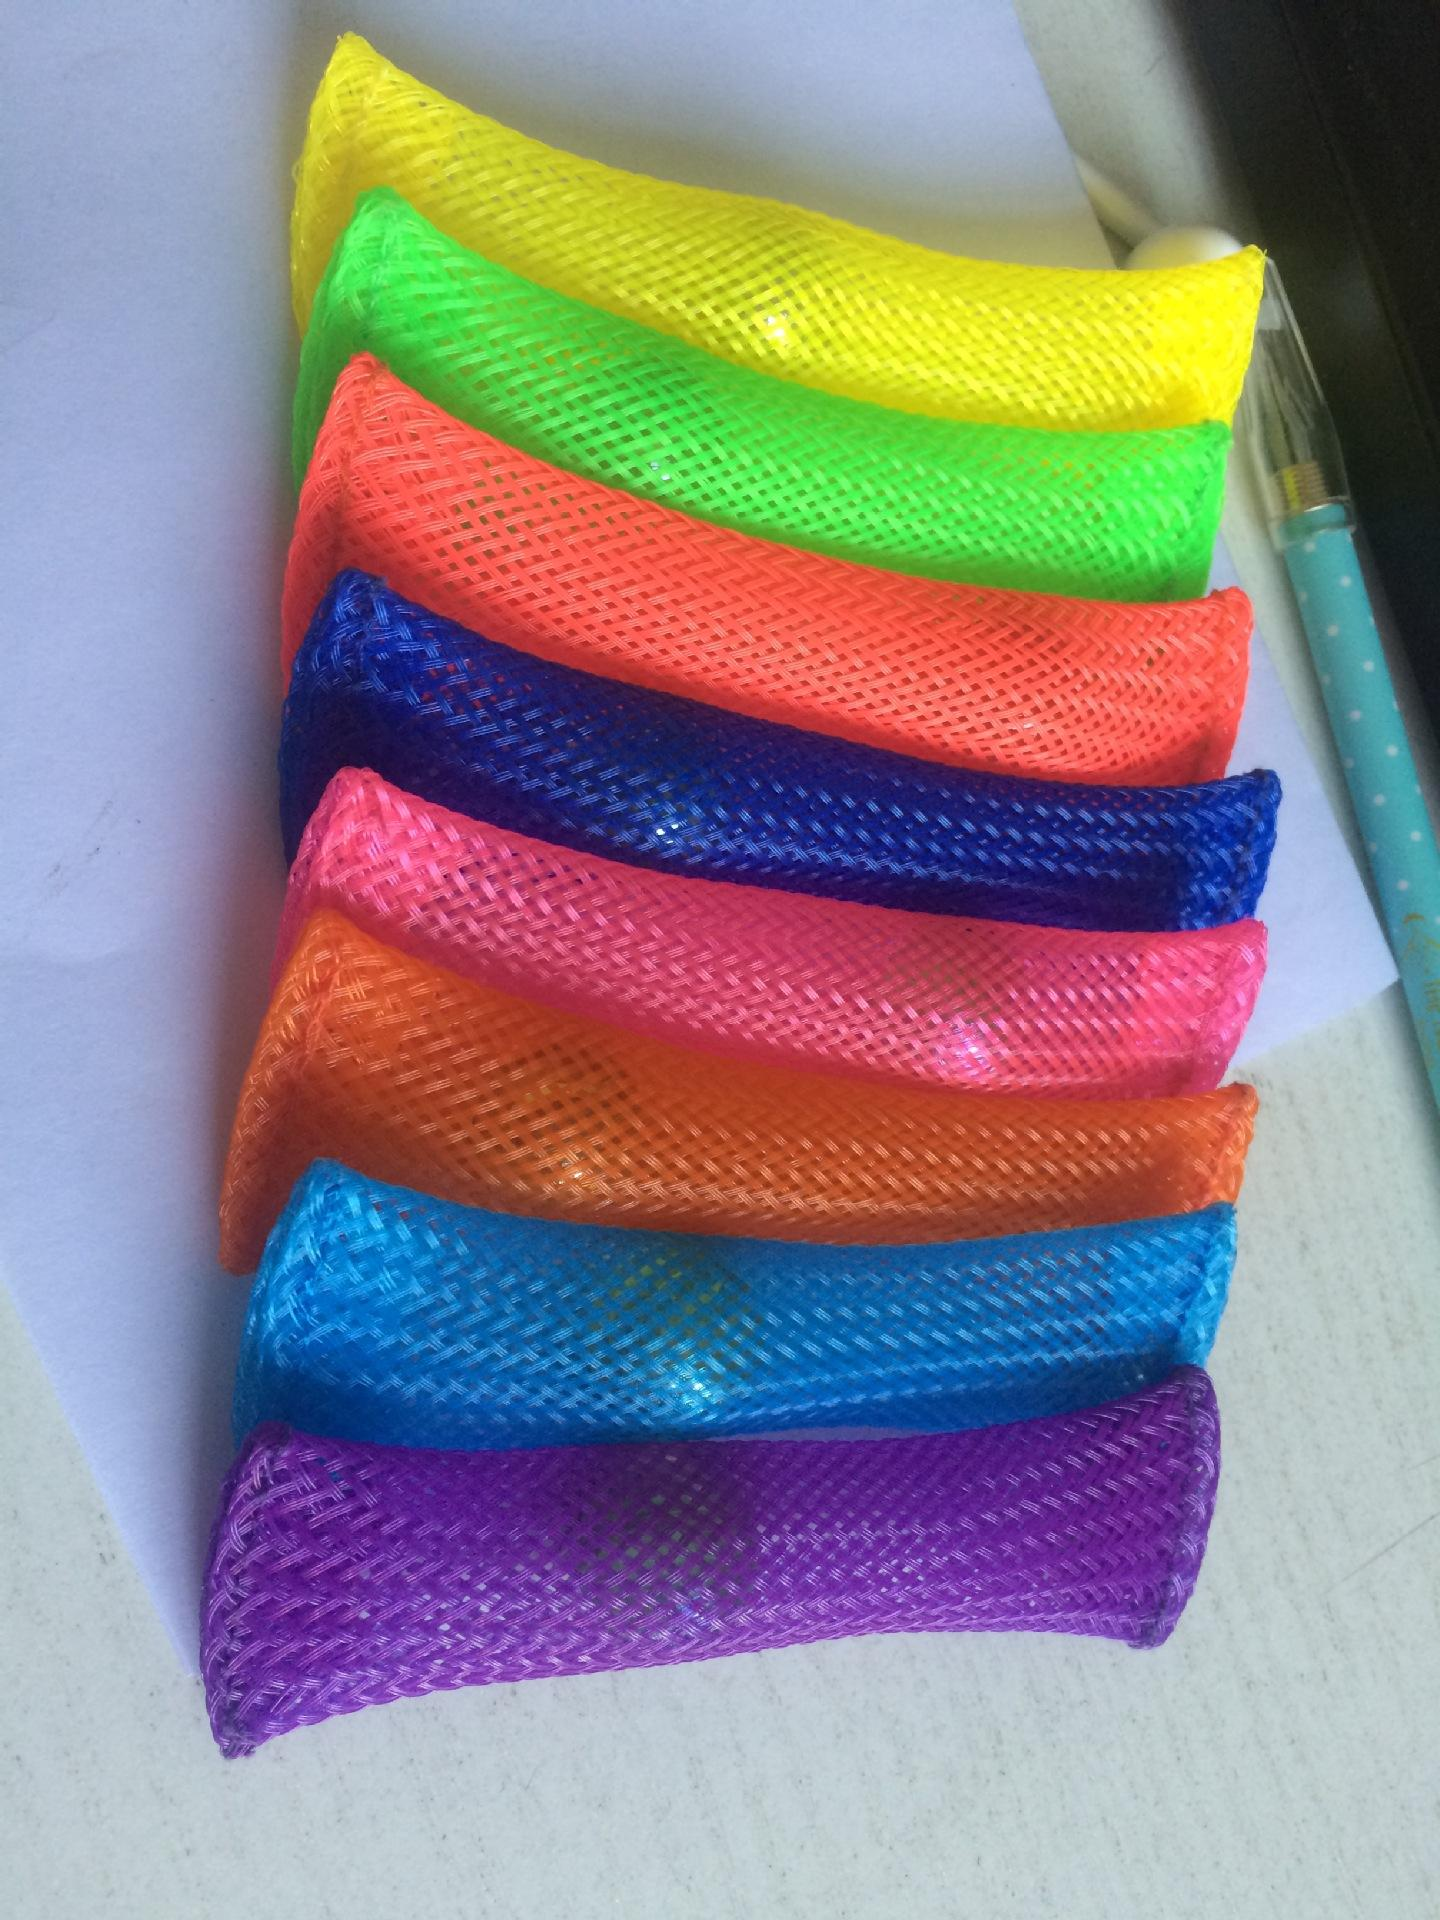 Cool Net Fid Toys Mesh Grid Belt Marble Fid s Toy Squeeze